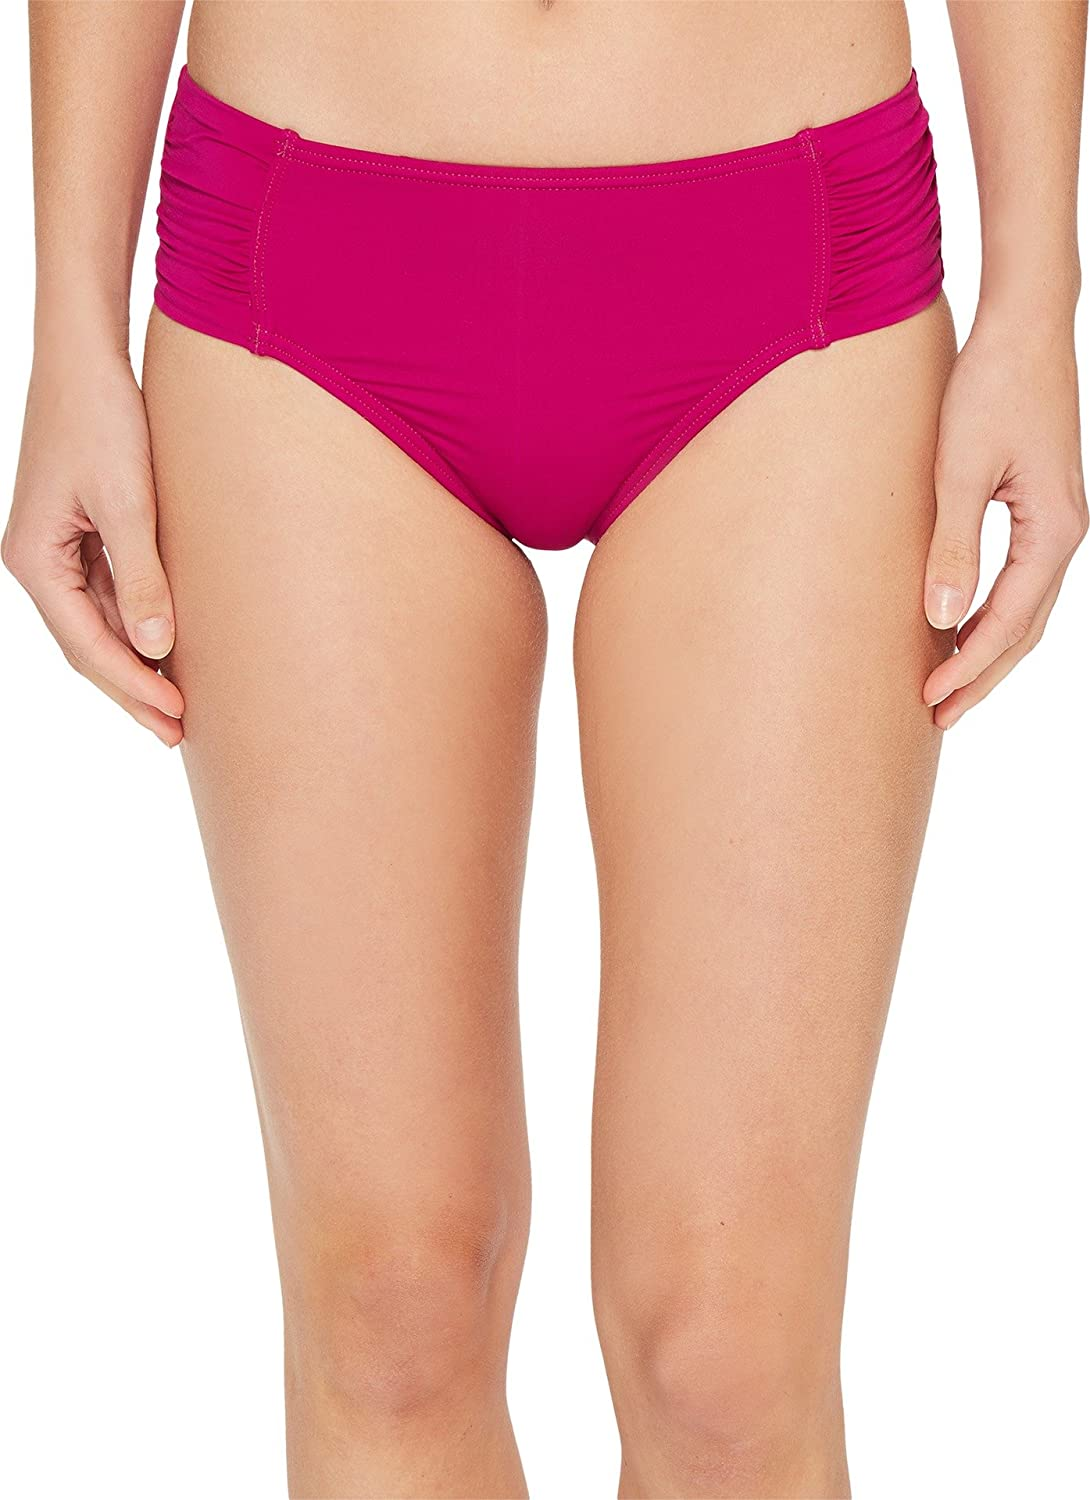 b13b08feea Amazon.com  Tommy Bahama Women s Pearl High-Waist Side-Shirred Bikini Bottom   Clothing